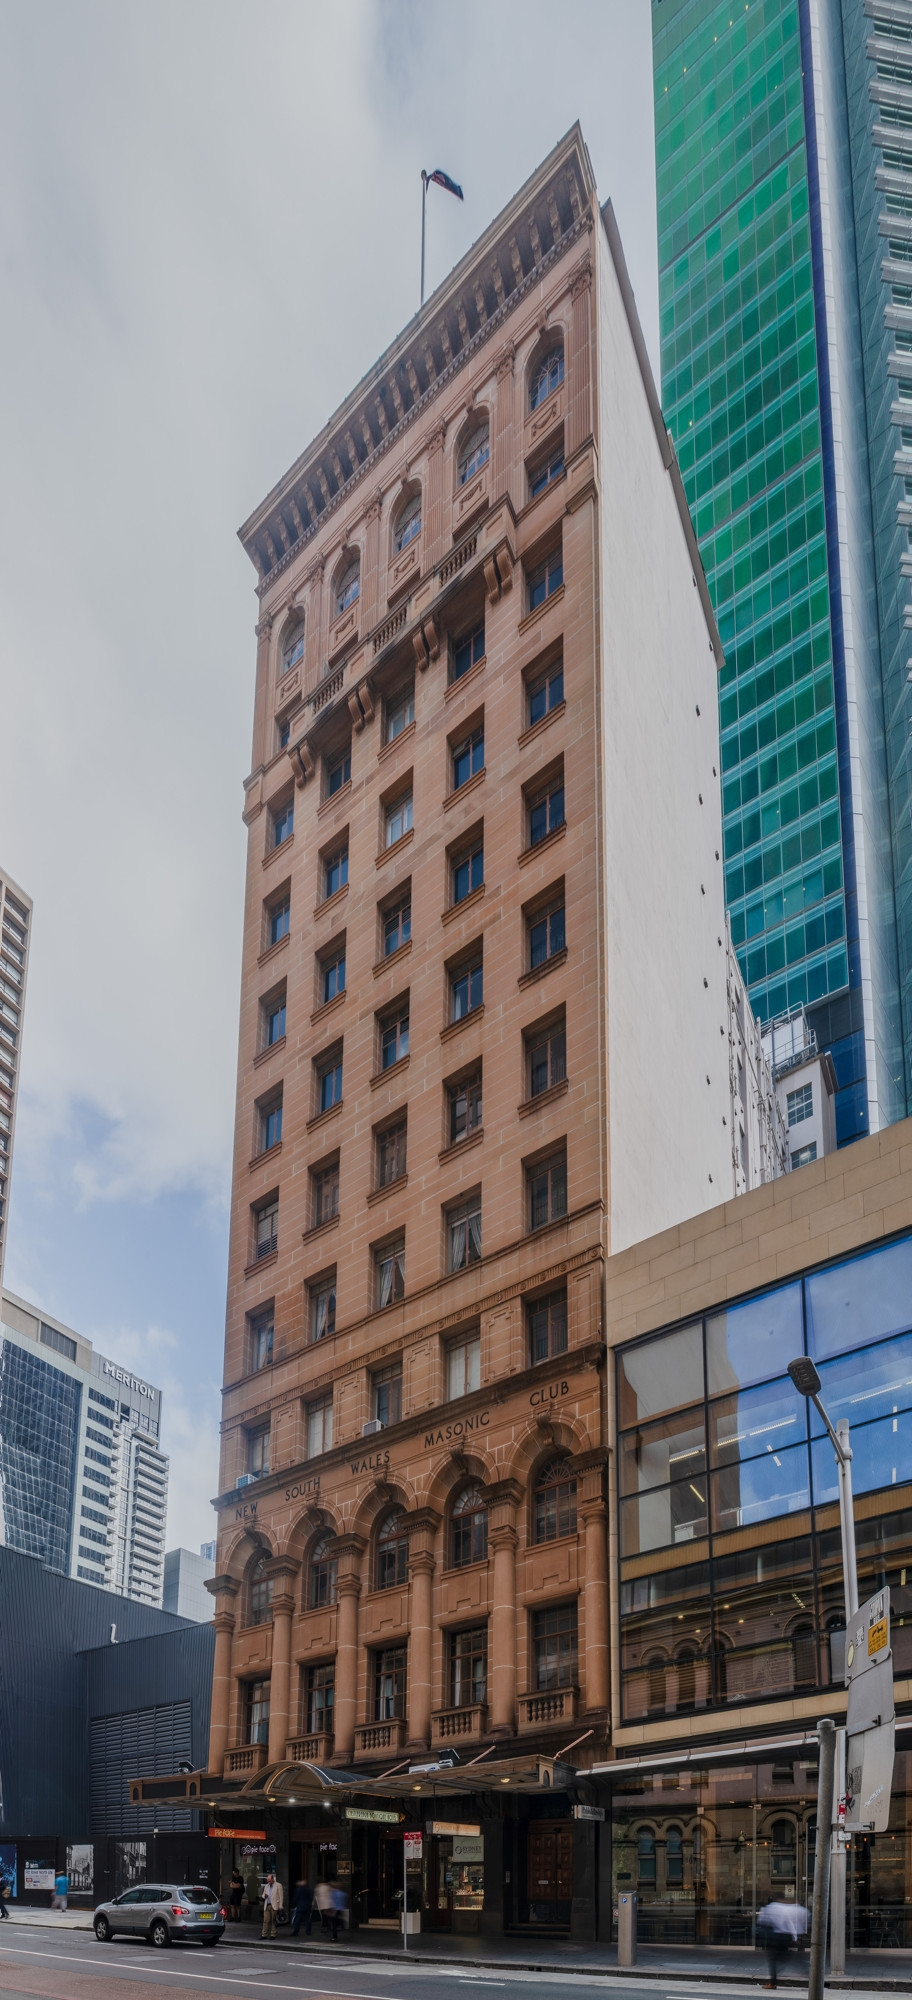 View of Castlereagh Boutique Hotel & NSW Masonic Club exterior from Castlereagh Street.